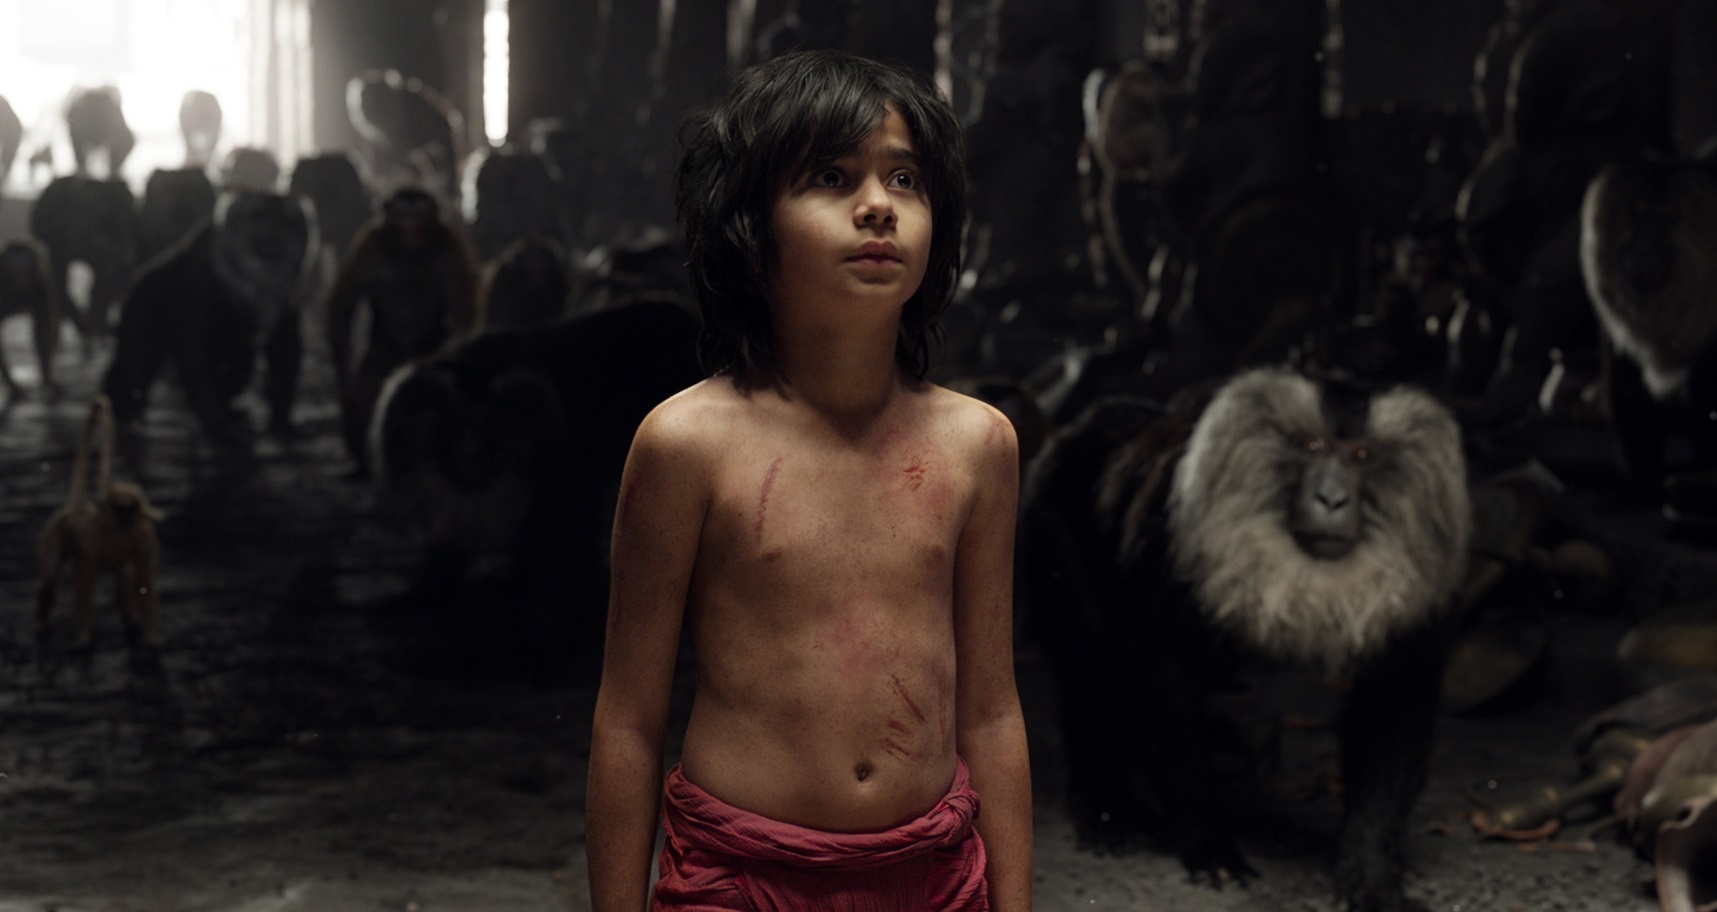 THE JUNGLE BOOK - Pictured: MOWGLI. ?2016 Disney Enterprises, Inc. All Rights Reserved.